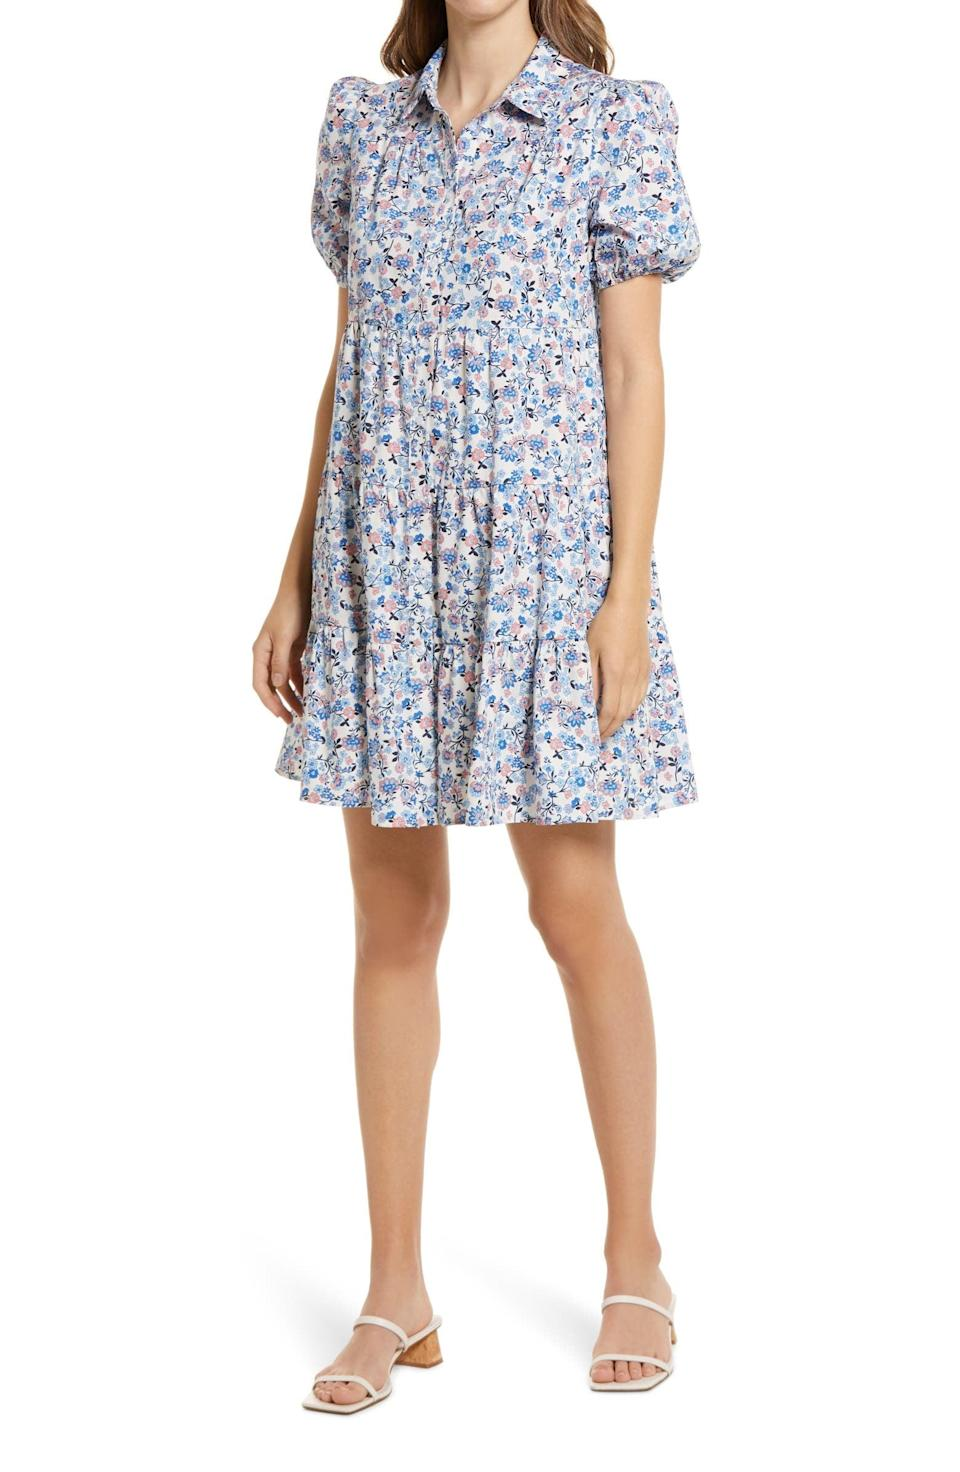 <p>For an easy-breezy summer look, this <span>Eliza J Floral Puff Sleeve Shirtdress</span> ($108) has you covered with its flouncy tiered skirt.</p>